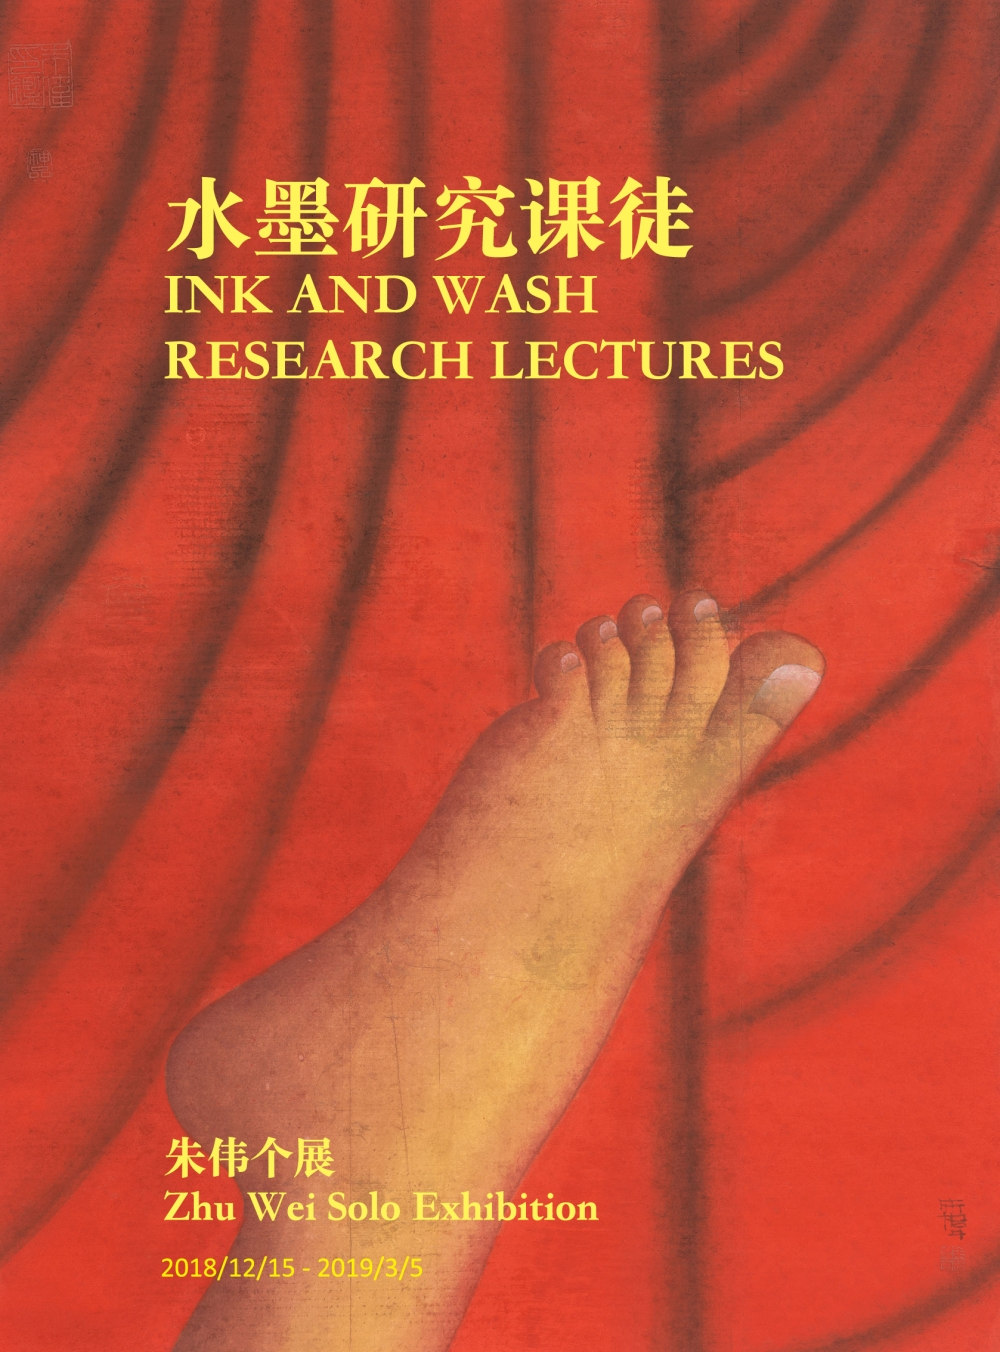 朱伟:水墨研究课徒 Zhu Wei: Ink and wash research lectures